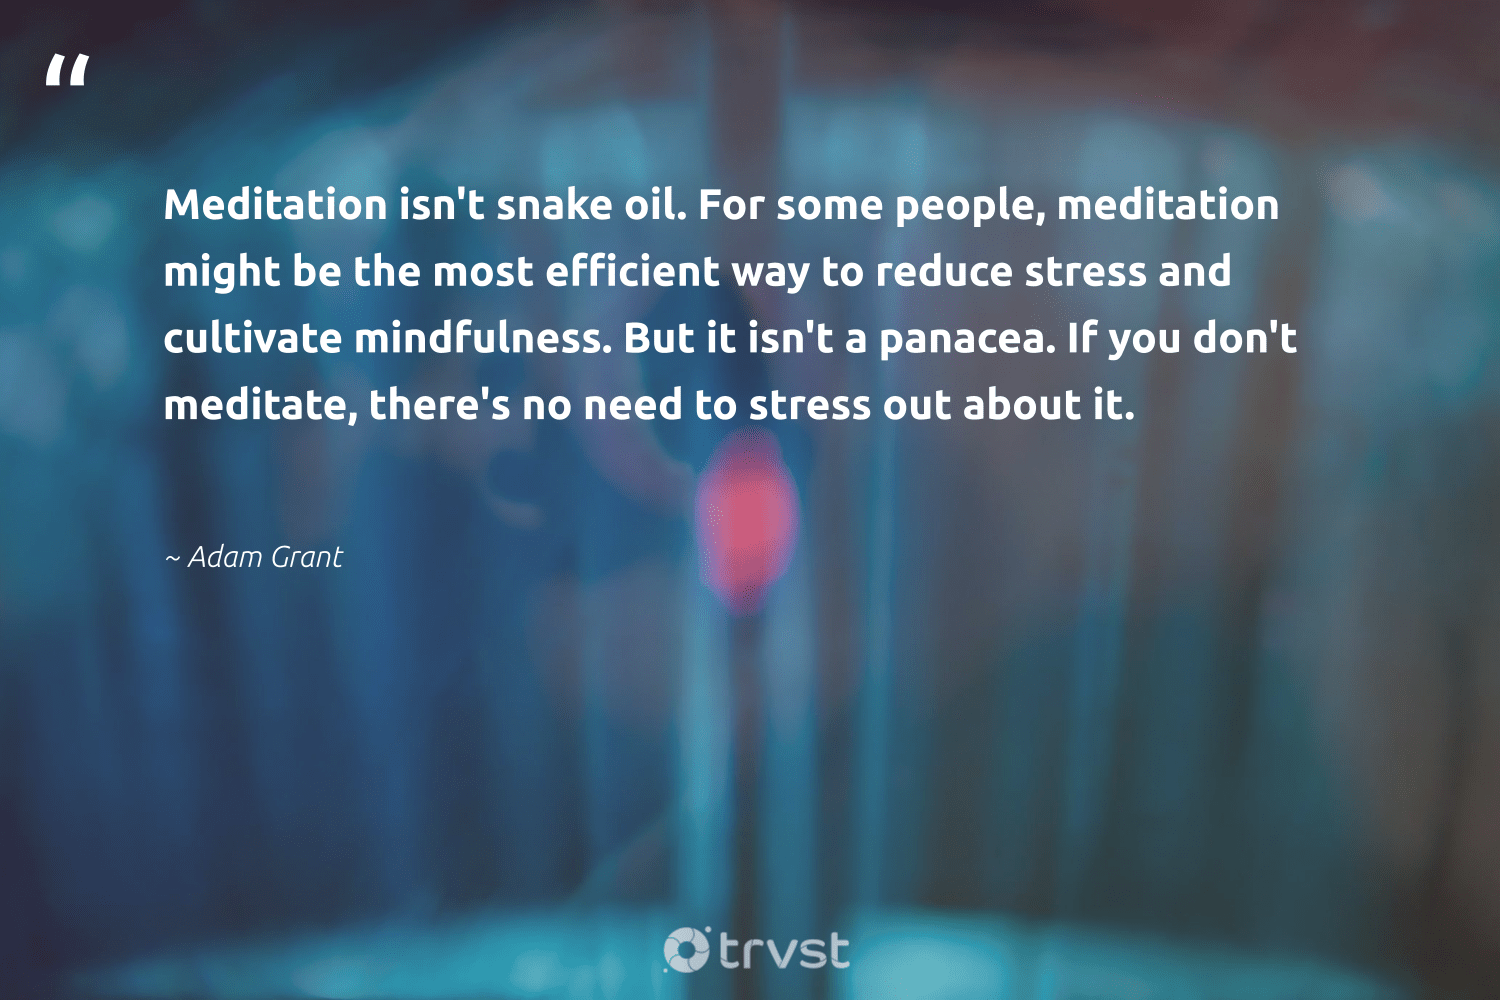 """""""Meditation isn't snake oil. For some people, meditation might be the most efficient way to reduce stress and cultivate mindfulness. But it isn't a panacea. If you don't meditate, there's no need to stress out about it.""""  - Adam Grant #trvst #quotes #reduce #oil #mindfulness #meditation #meditate #motivation #positivity #happiness #health #socialimpact"""